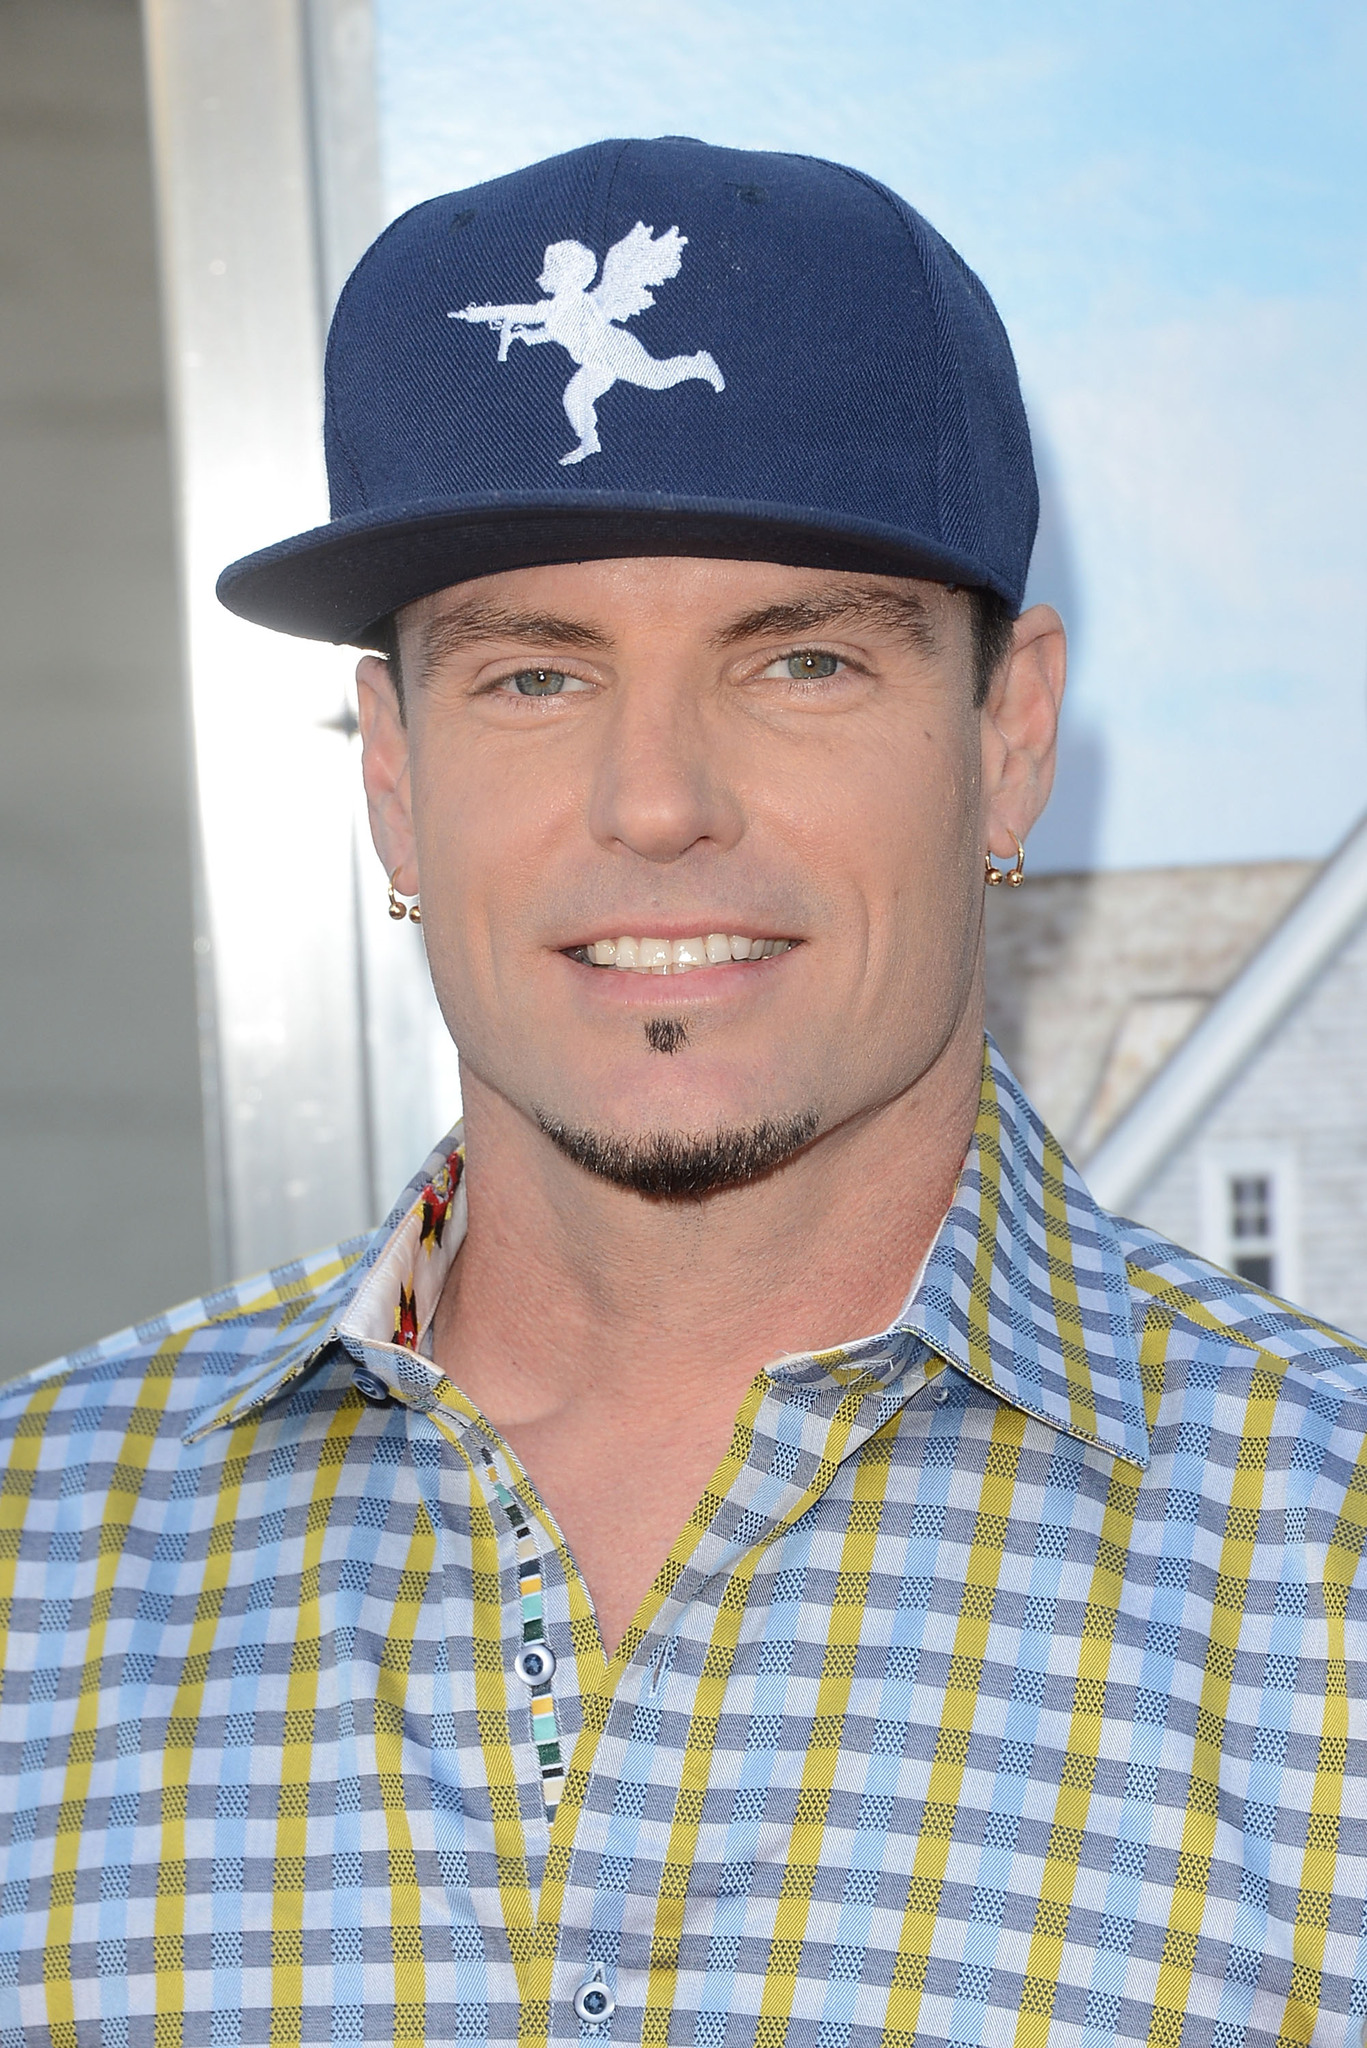 Vanilla Ice early